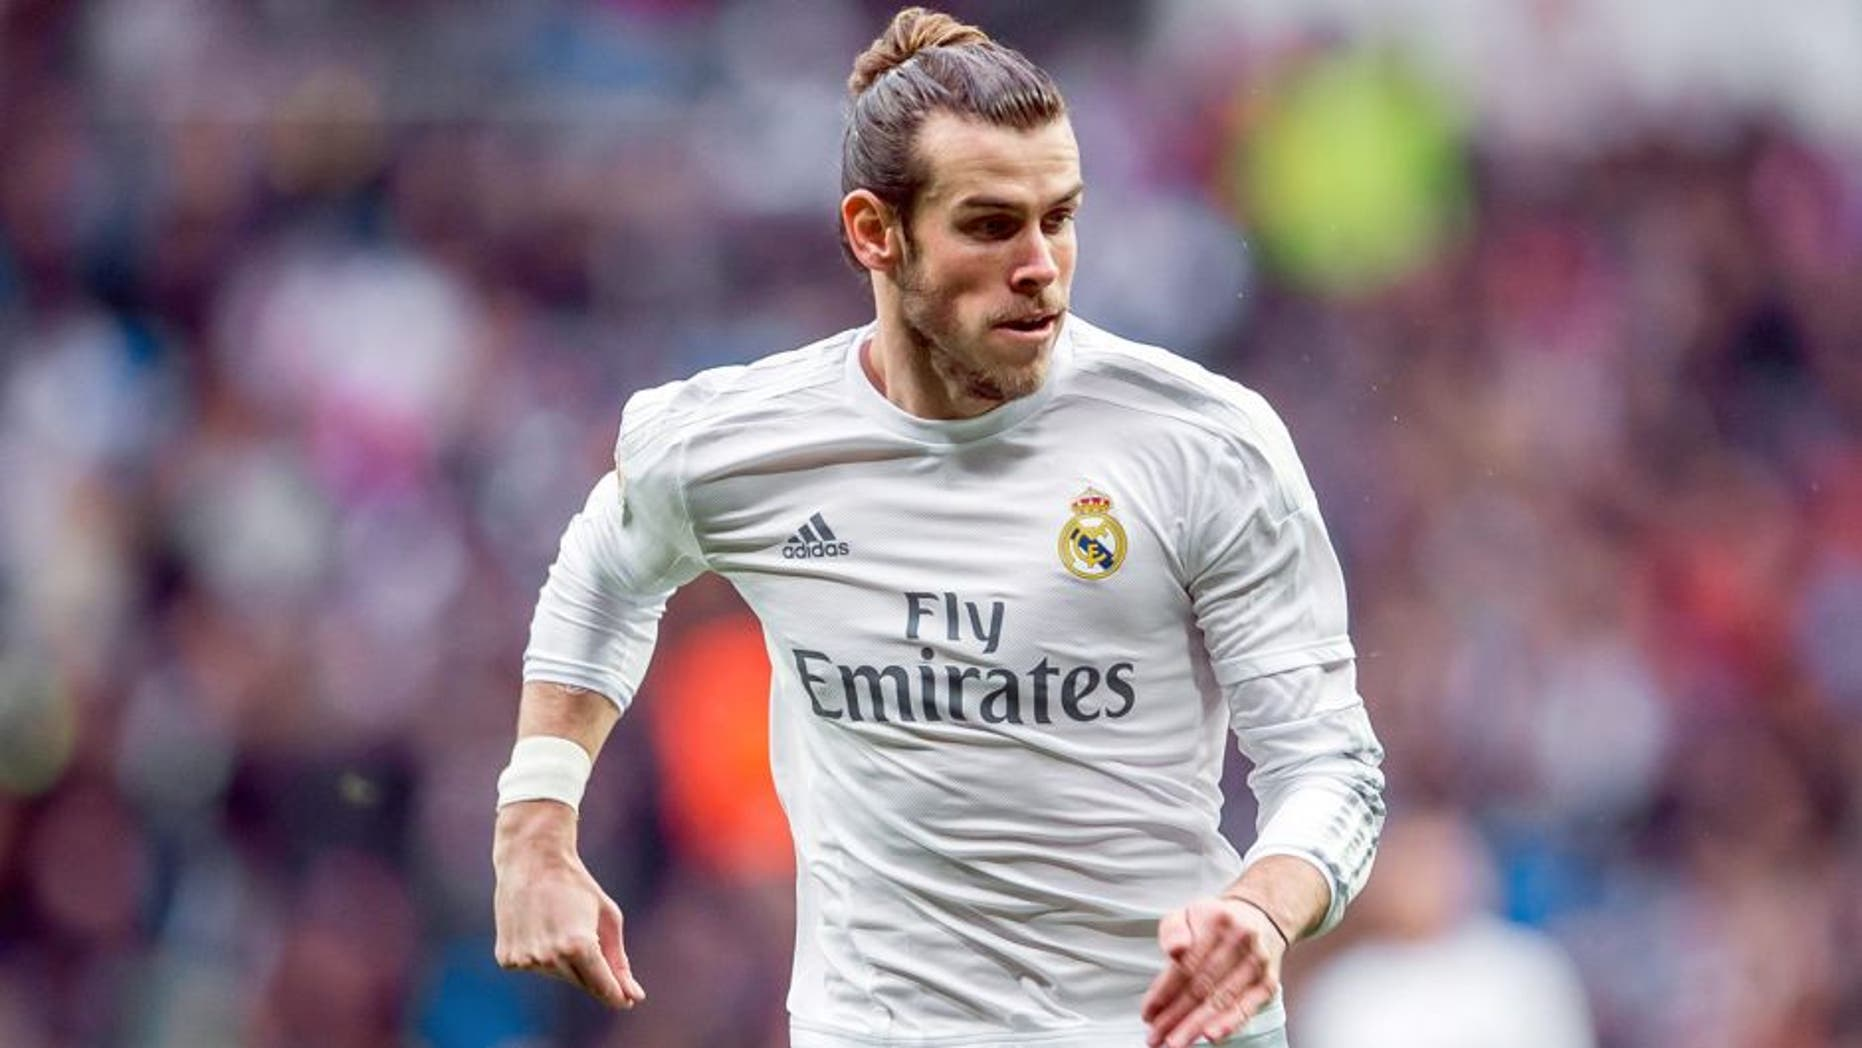 MADRID, SPAIN - DECEMBER 30: Gareth Bale of Real Madrid CF in action during the Real Madrid CF vs Real Sociedad match as part of the Liga BBVA 2015-2016 at the Estadio Santiago Bernabeu on December 30, 2015 in Madrid, Spain. (Photo by Aitor Alcalde/Power Sport Images/Getty Images)